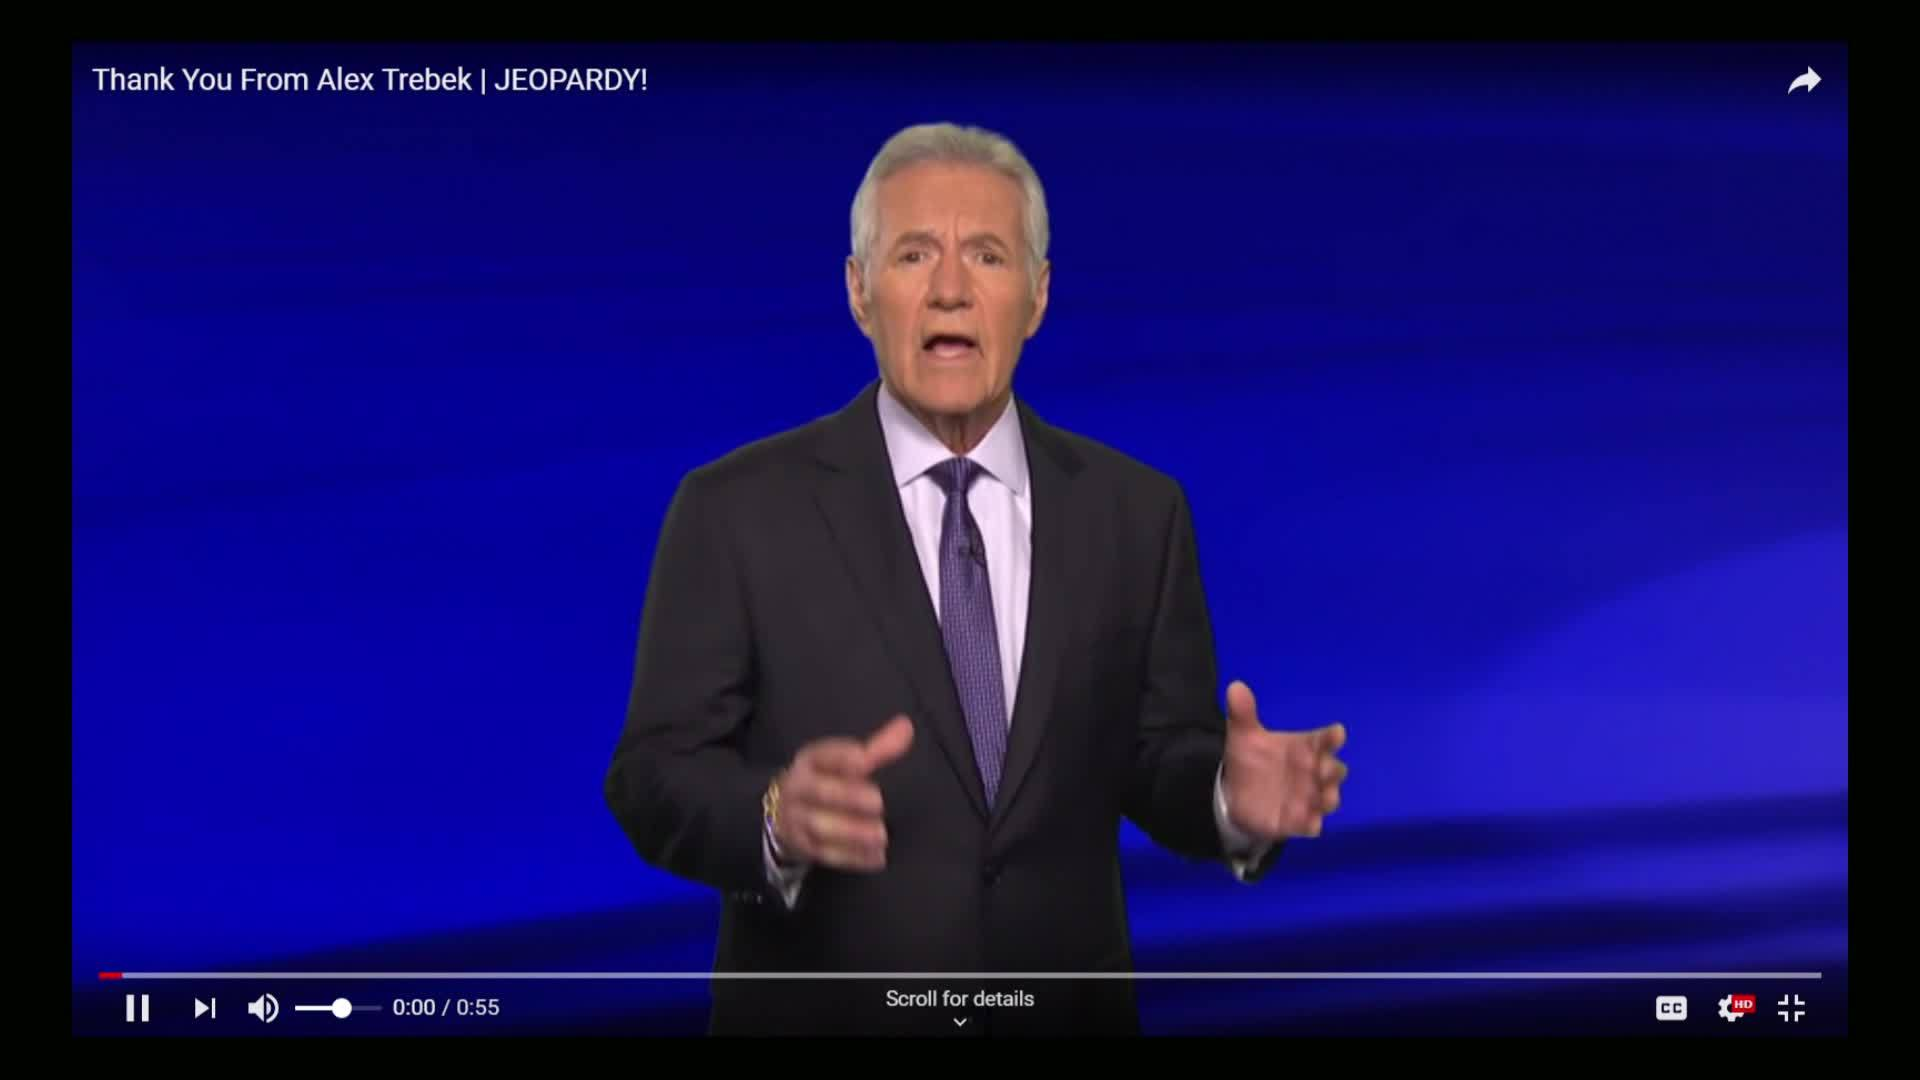 'I'm a lucky guy': Alex Trebek thanks fans for support after cancer diagnosis